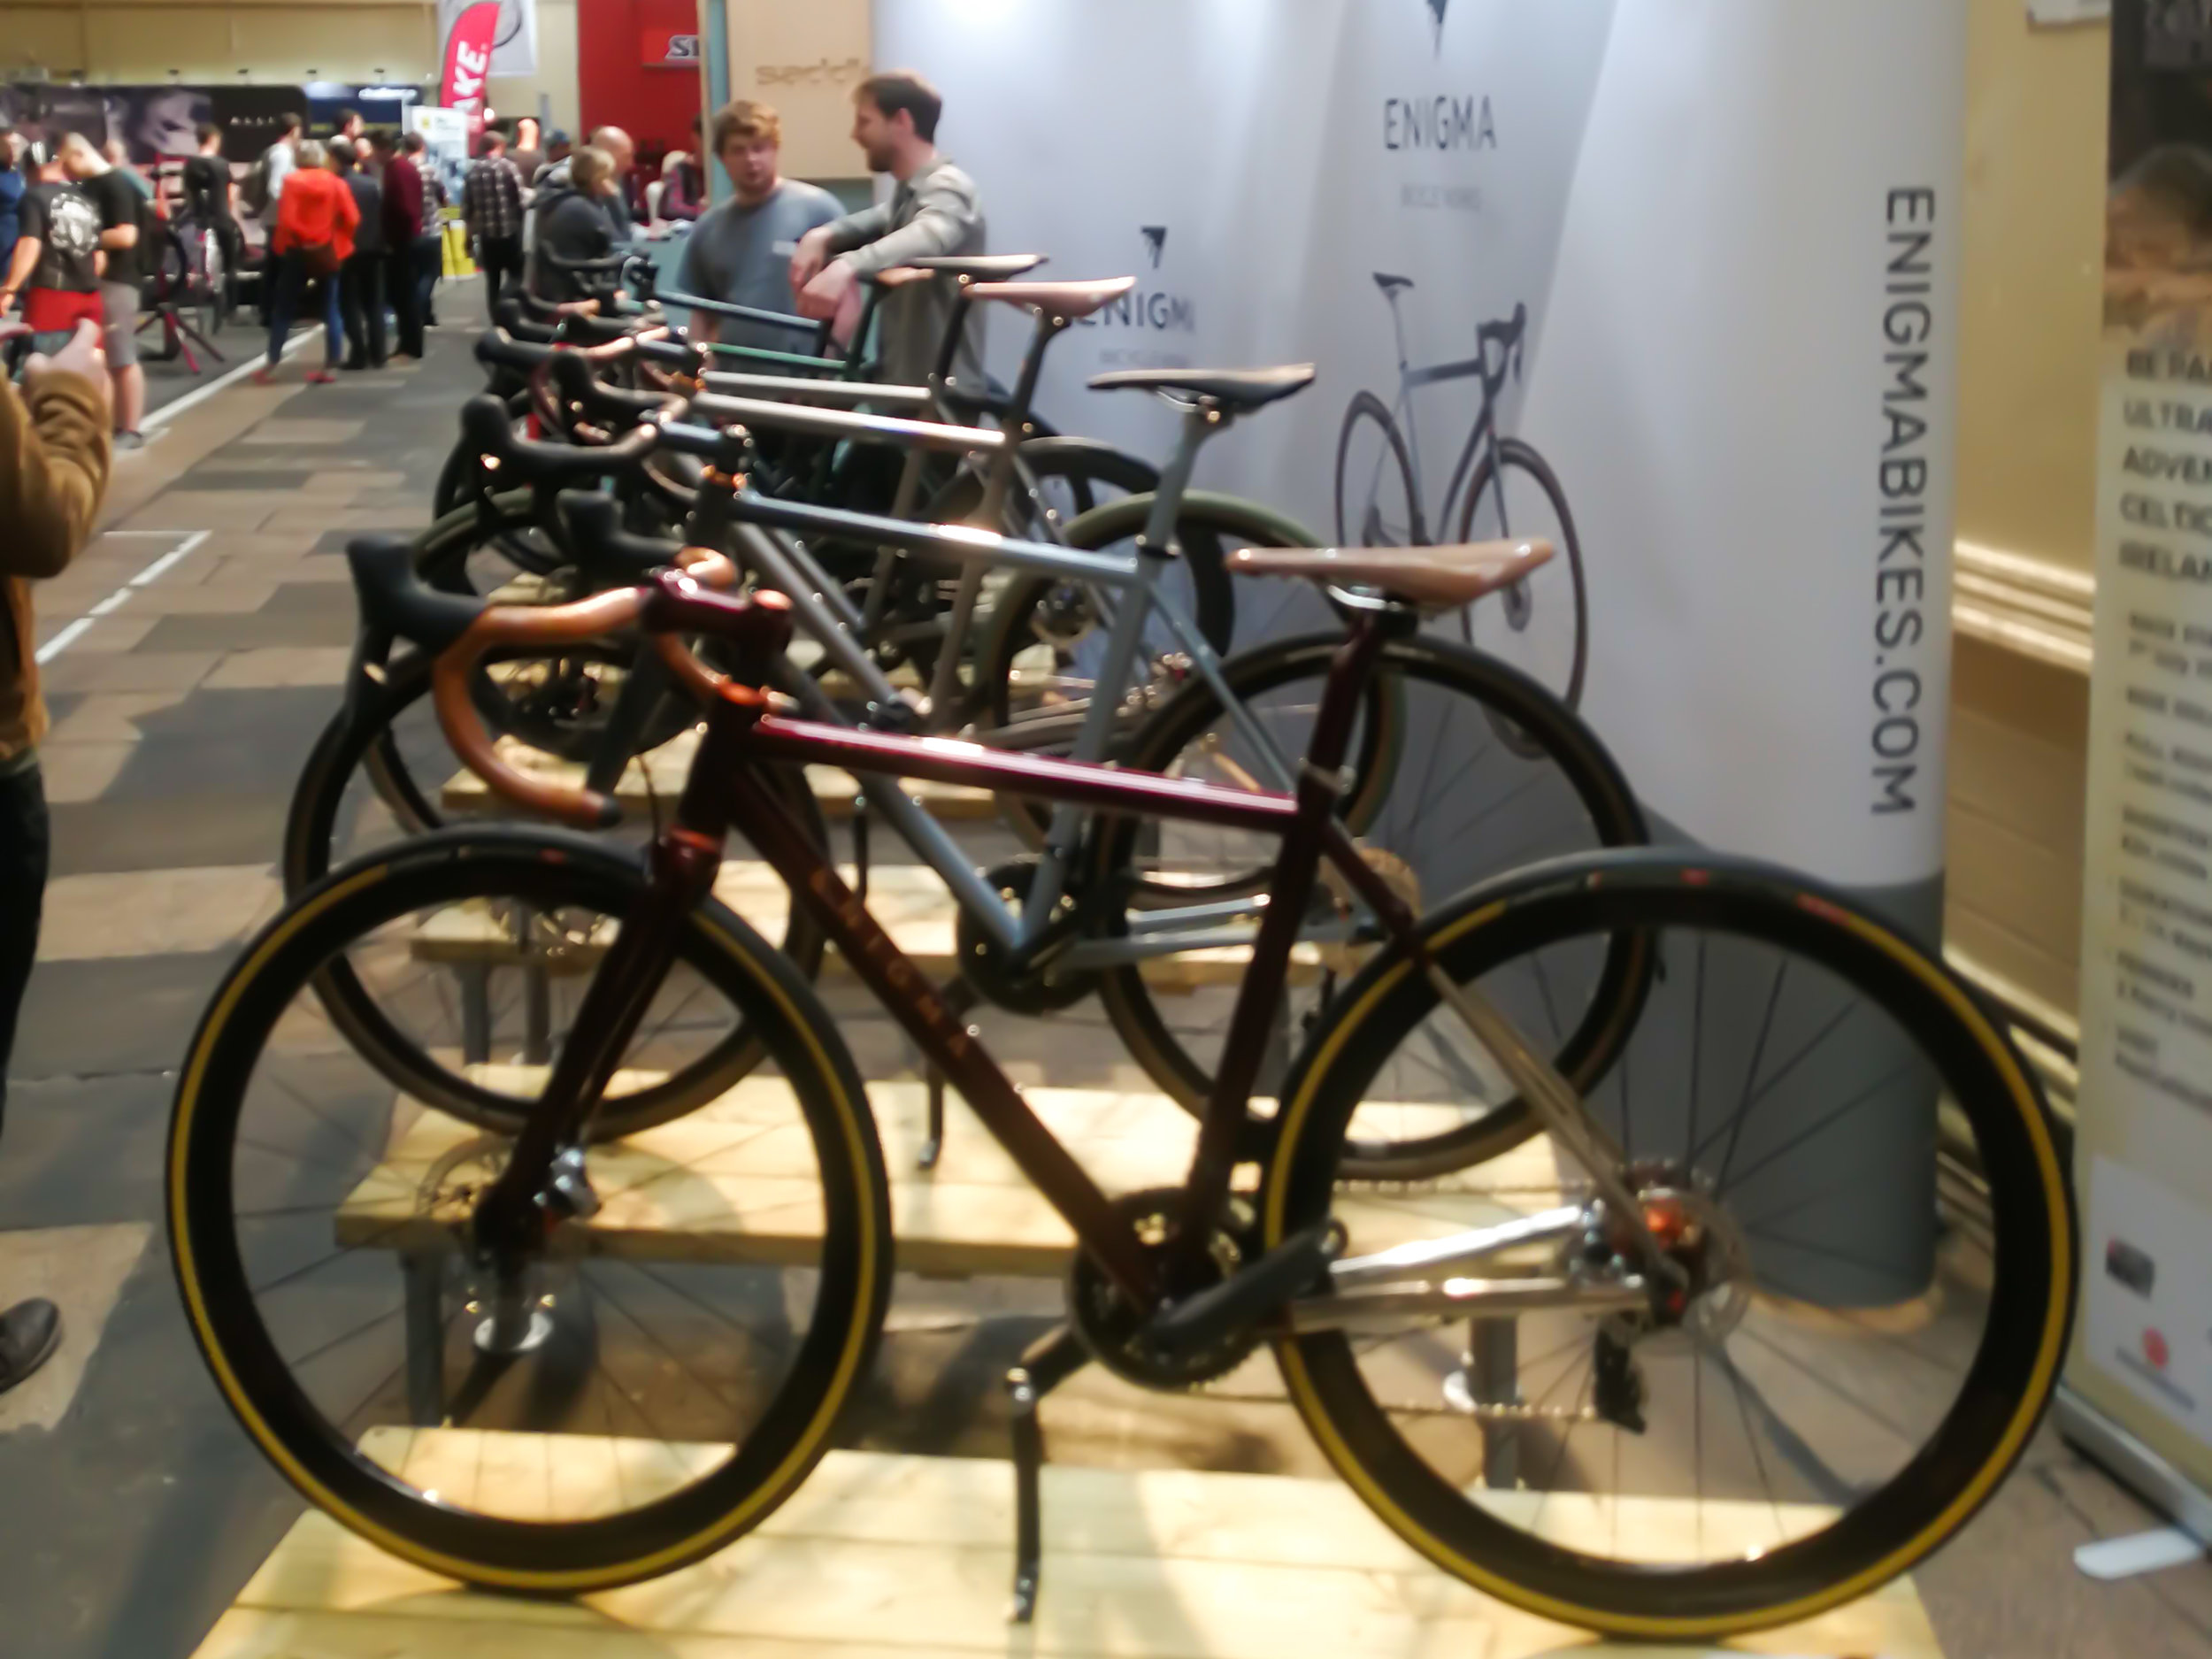 A stunning array of steel and titanium bikes on display from Enigma.